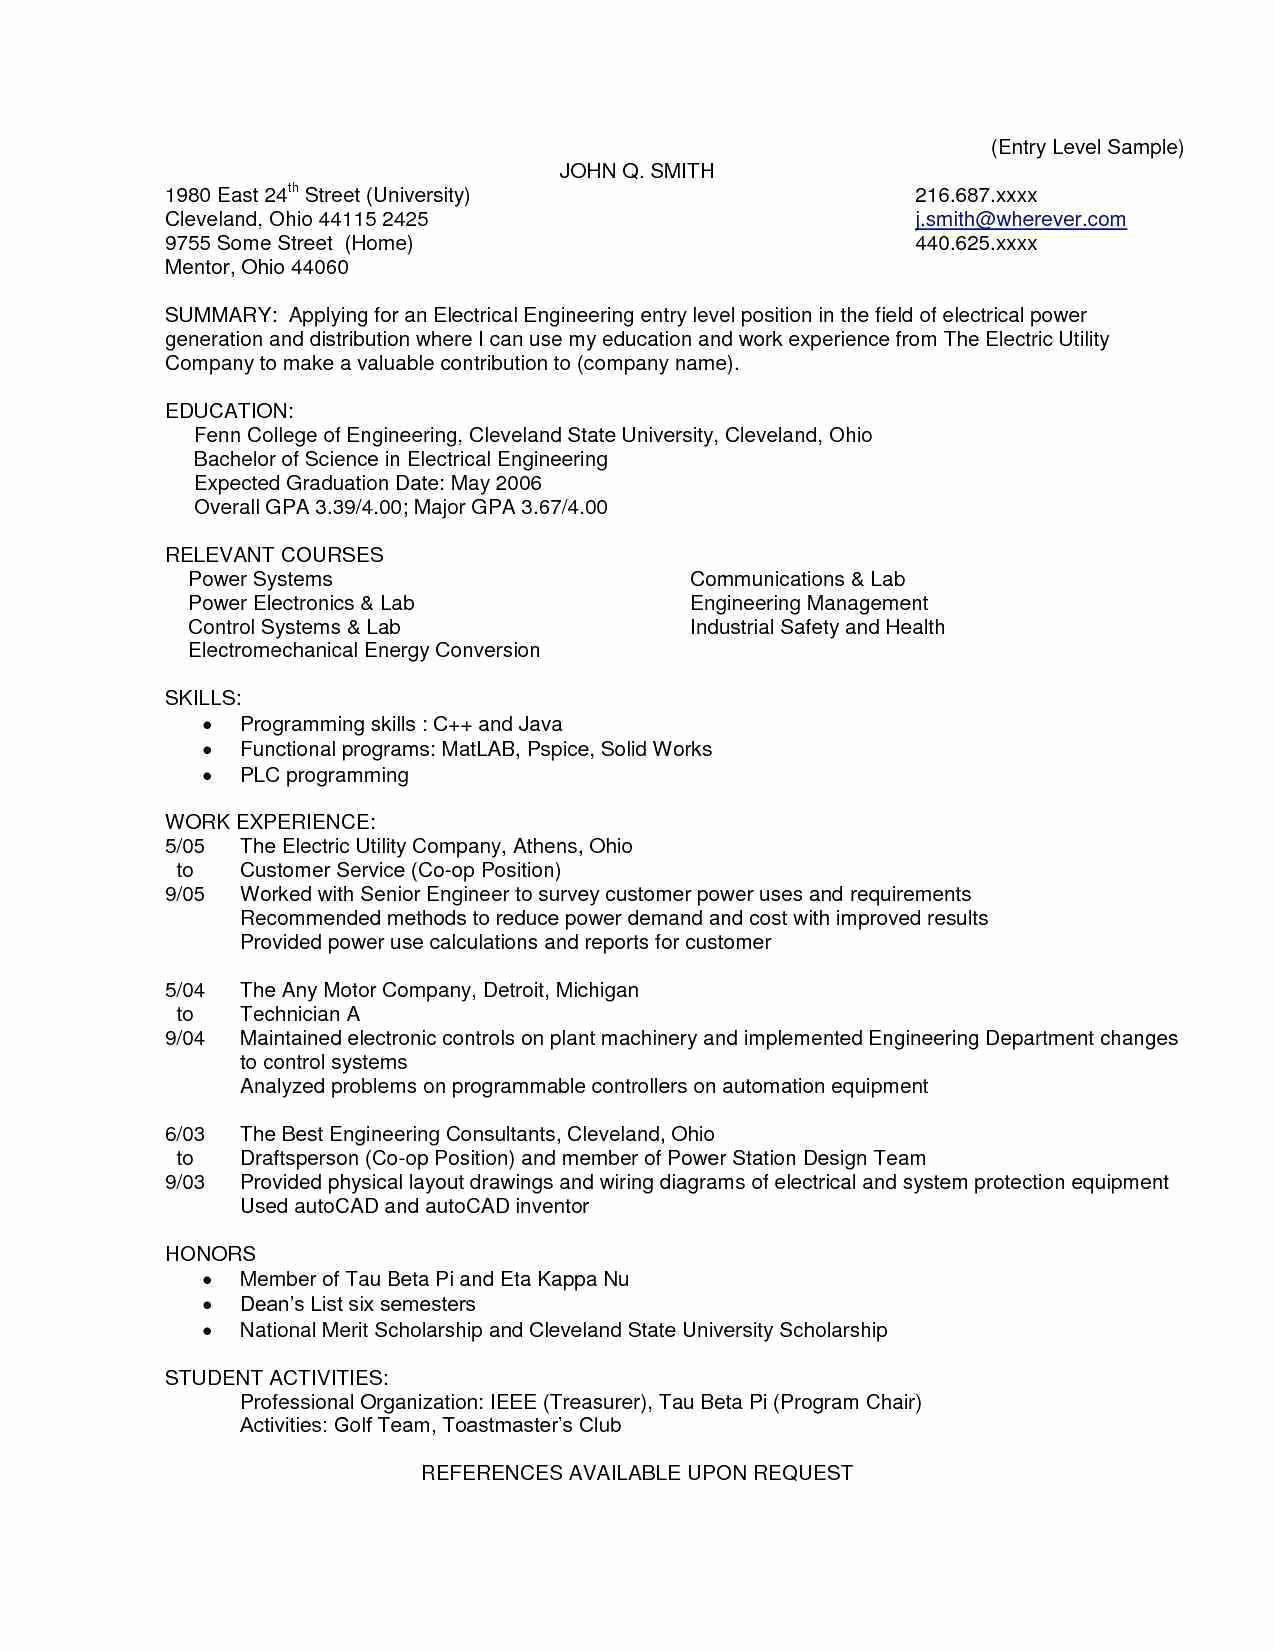 Entry Level Electrical Engineering Cover Letter Manual